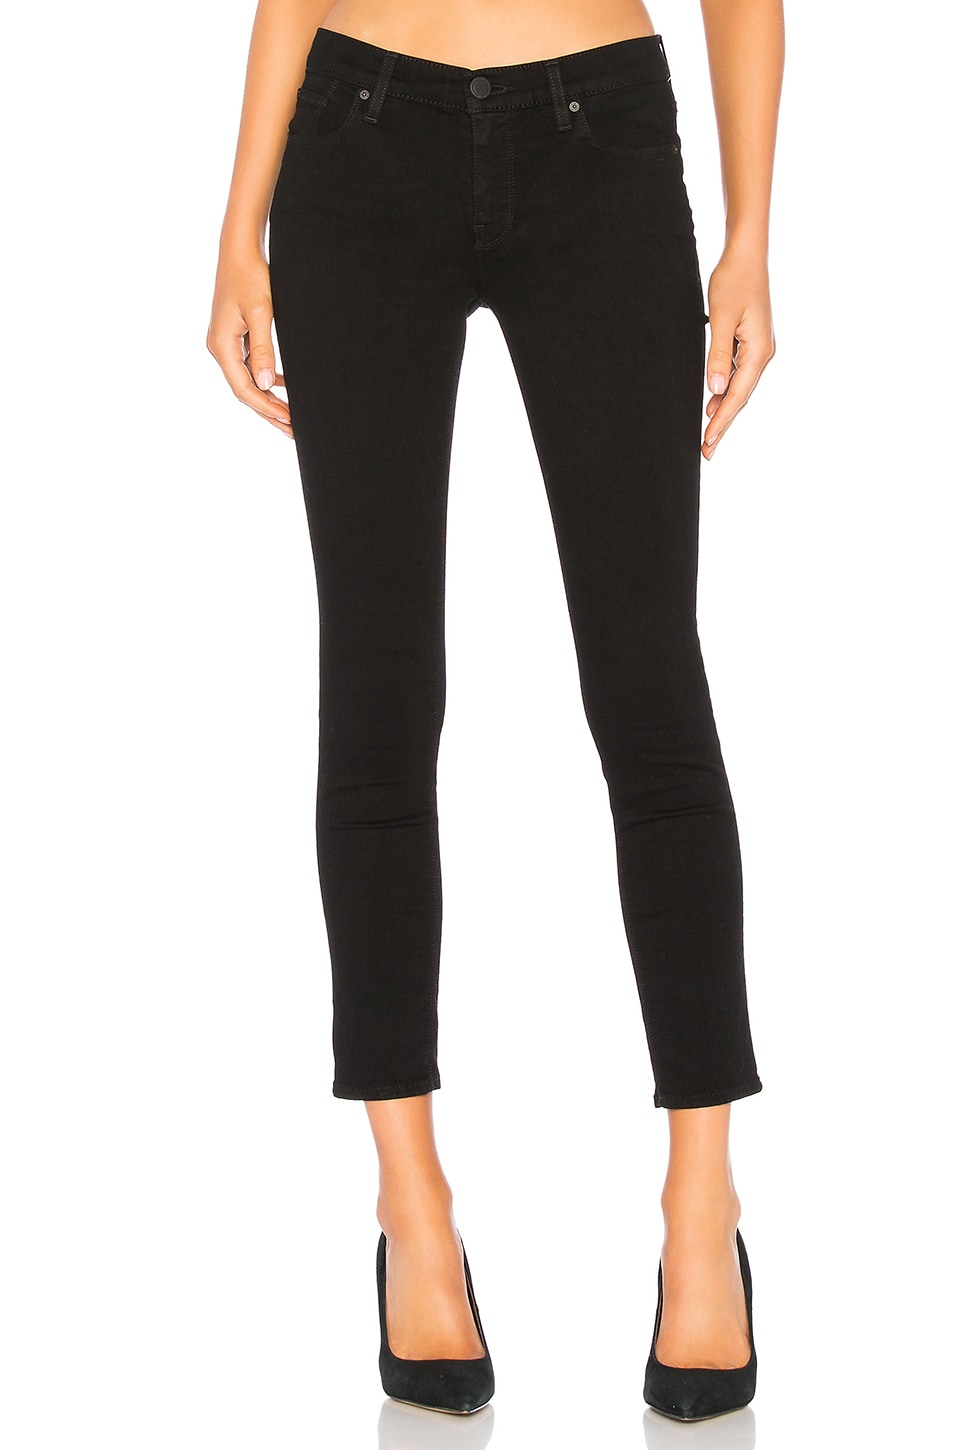 Hudson Jeans Krista Super Skinny in Black